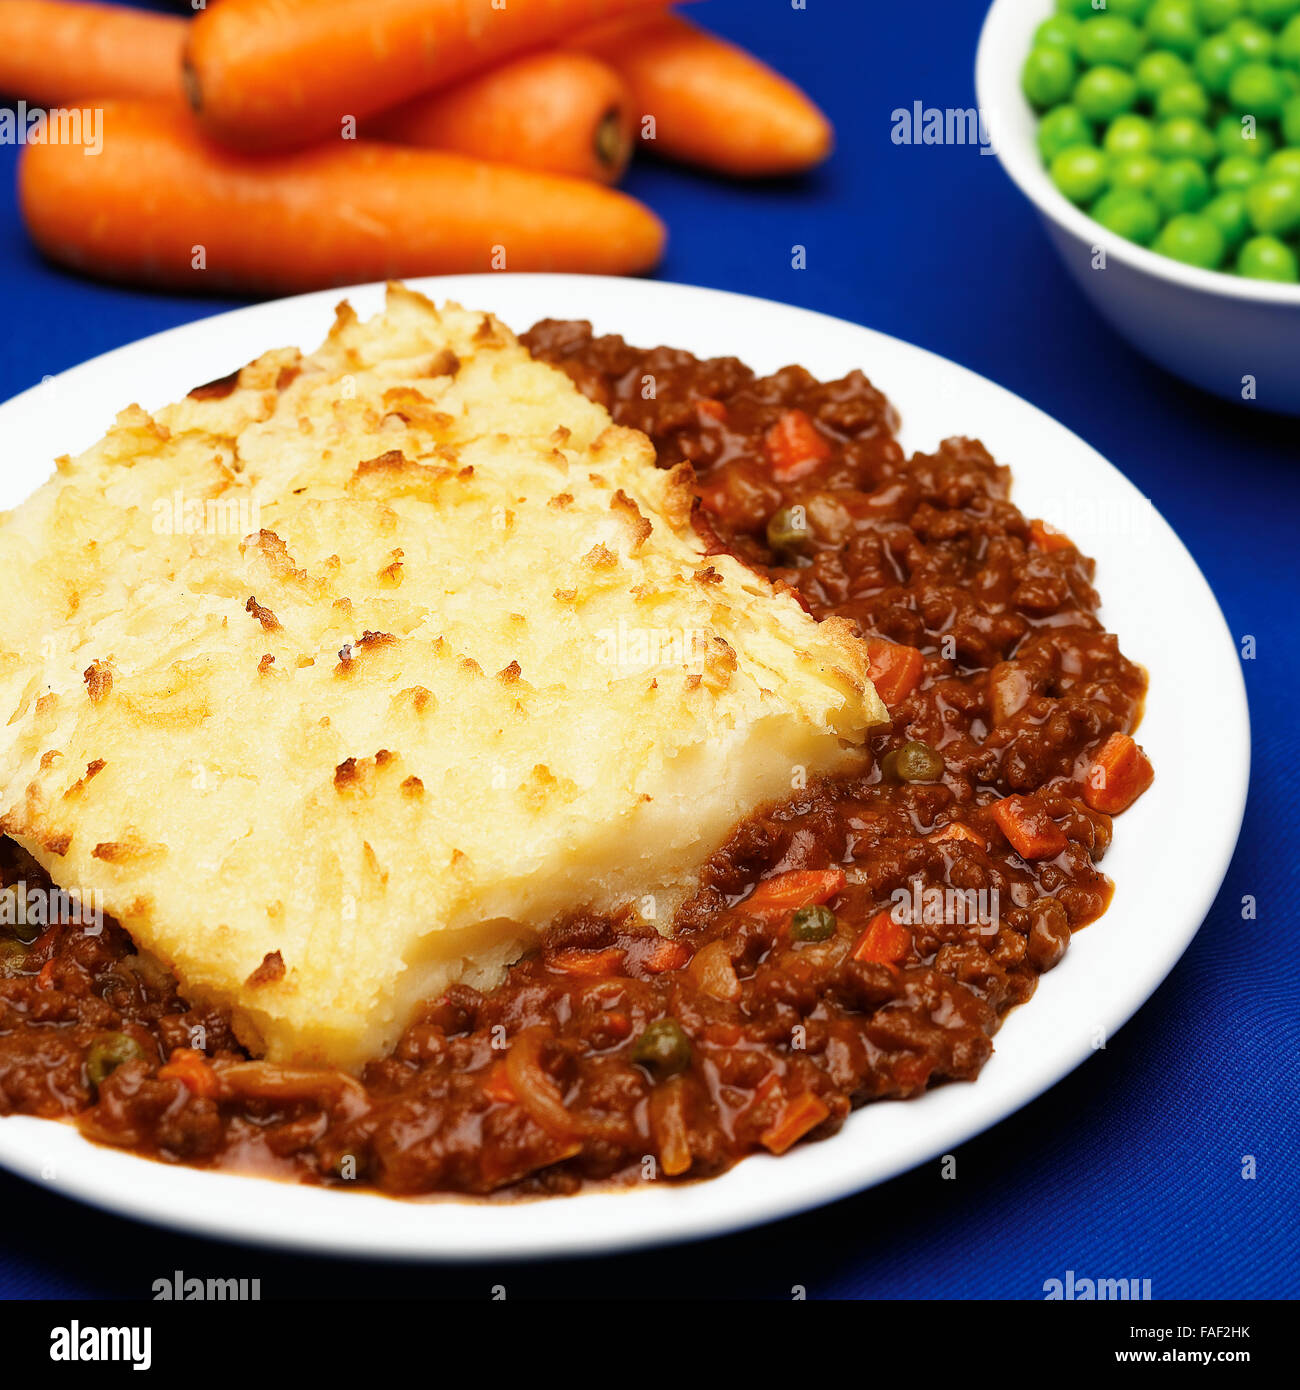 Plate of homemade shepherd\u0027s pie made with minced beef garden peas carrots and a baked mashed potato topping. & Plate of homemade shepherd\u0027s pie made with minced beef garden peas ...